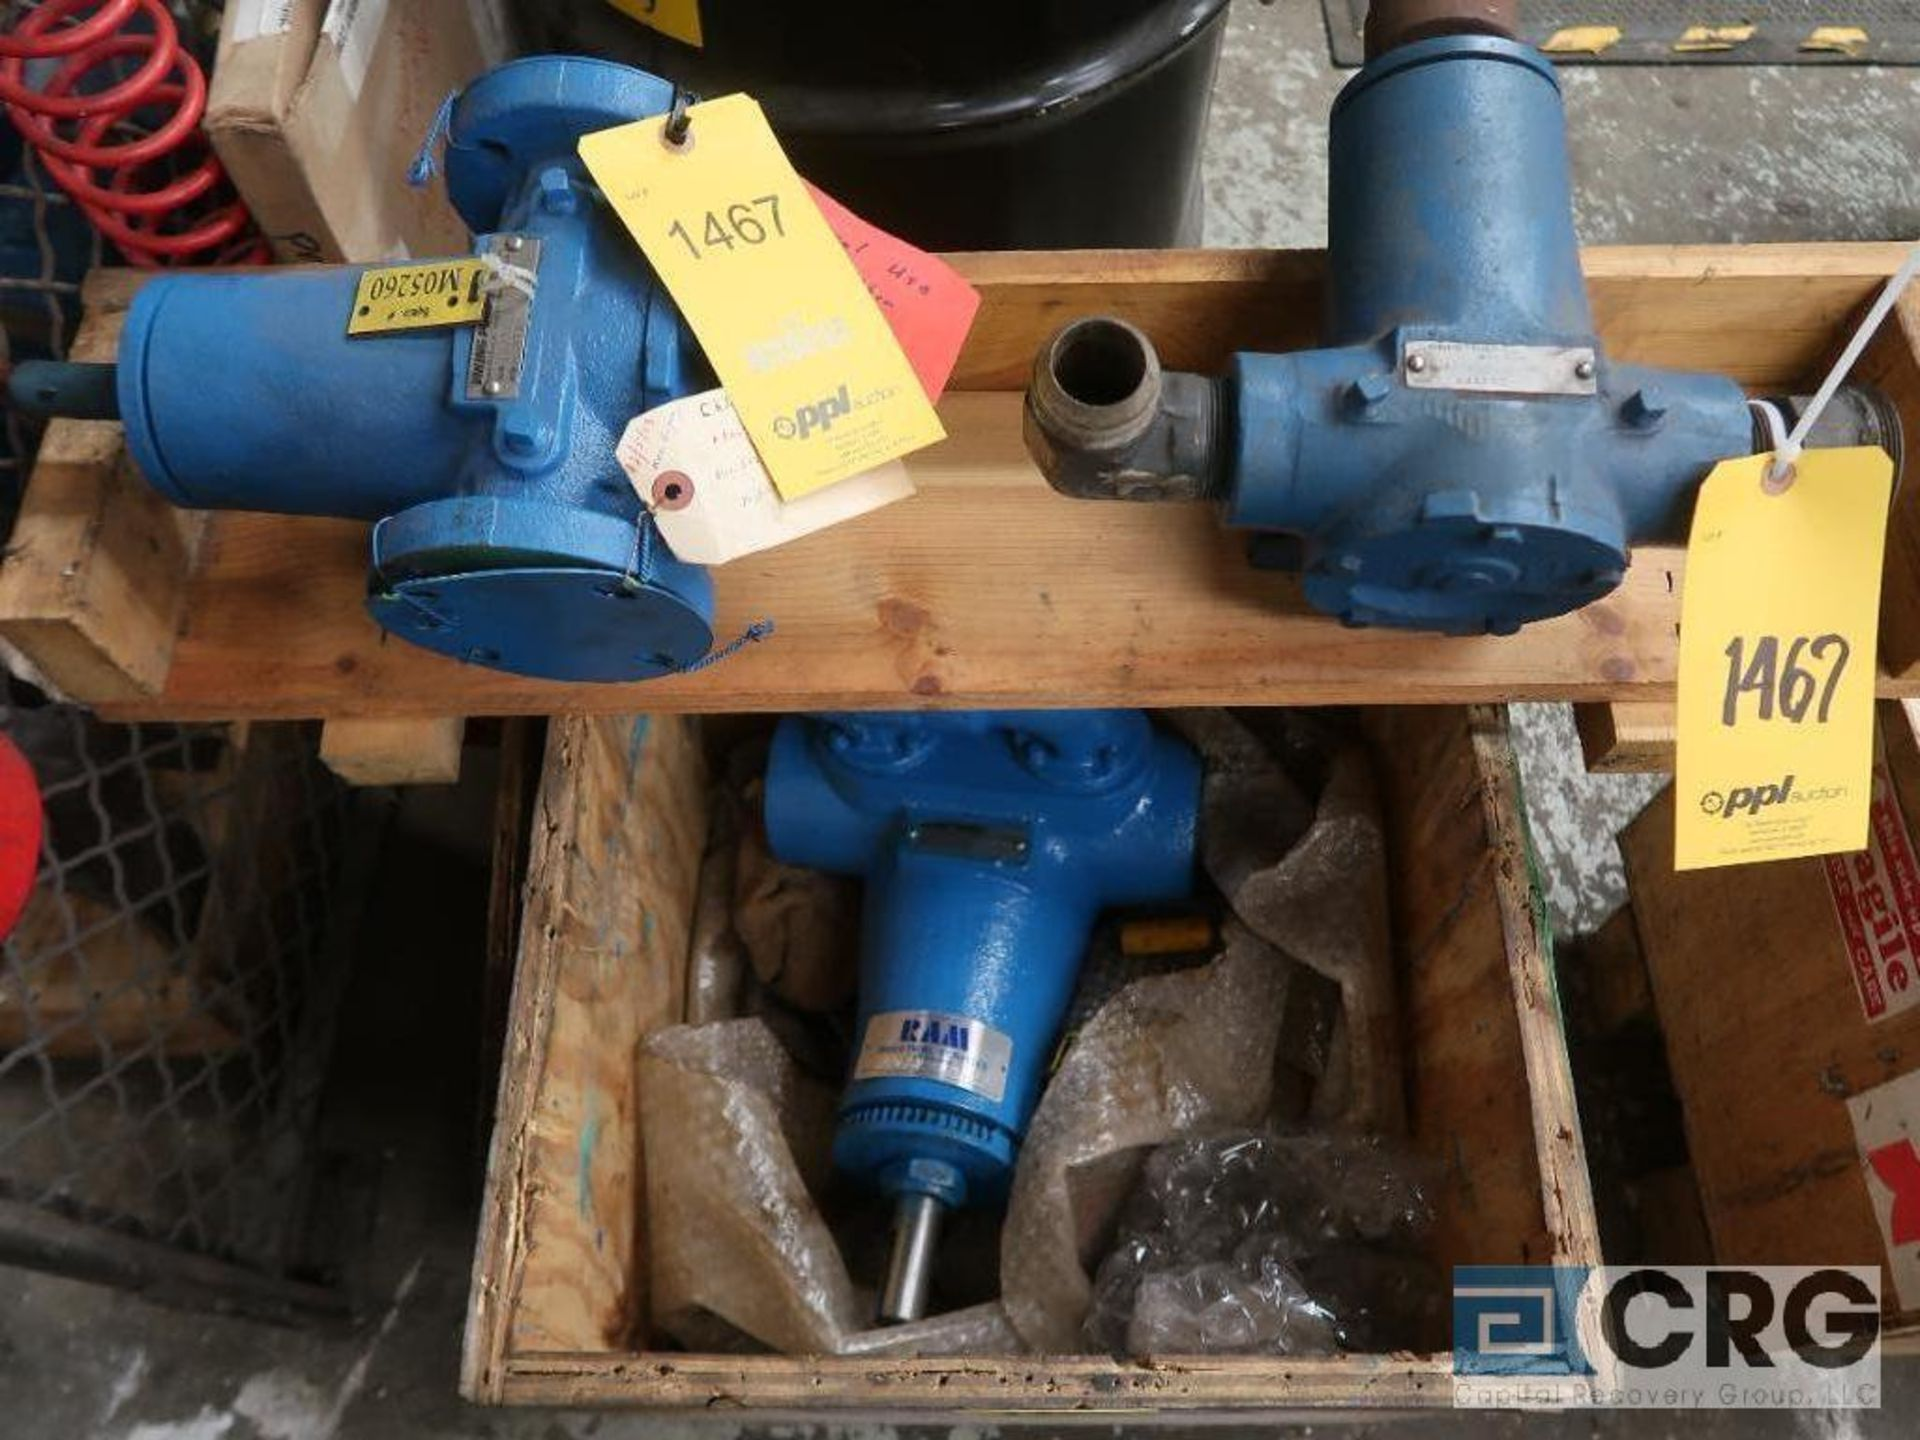 Lot of (3) Viking pumps, (1) HJ4195, (1) HJ197, and (1) AS4195 (Basement Stores)